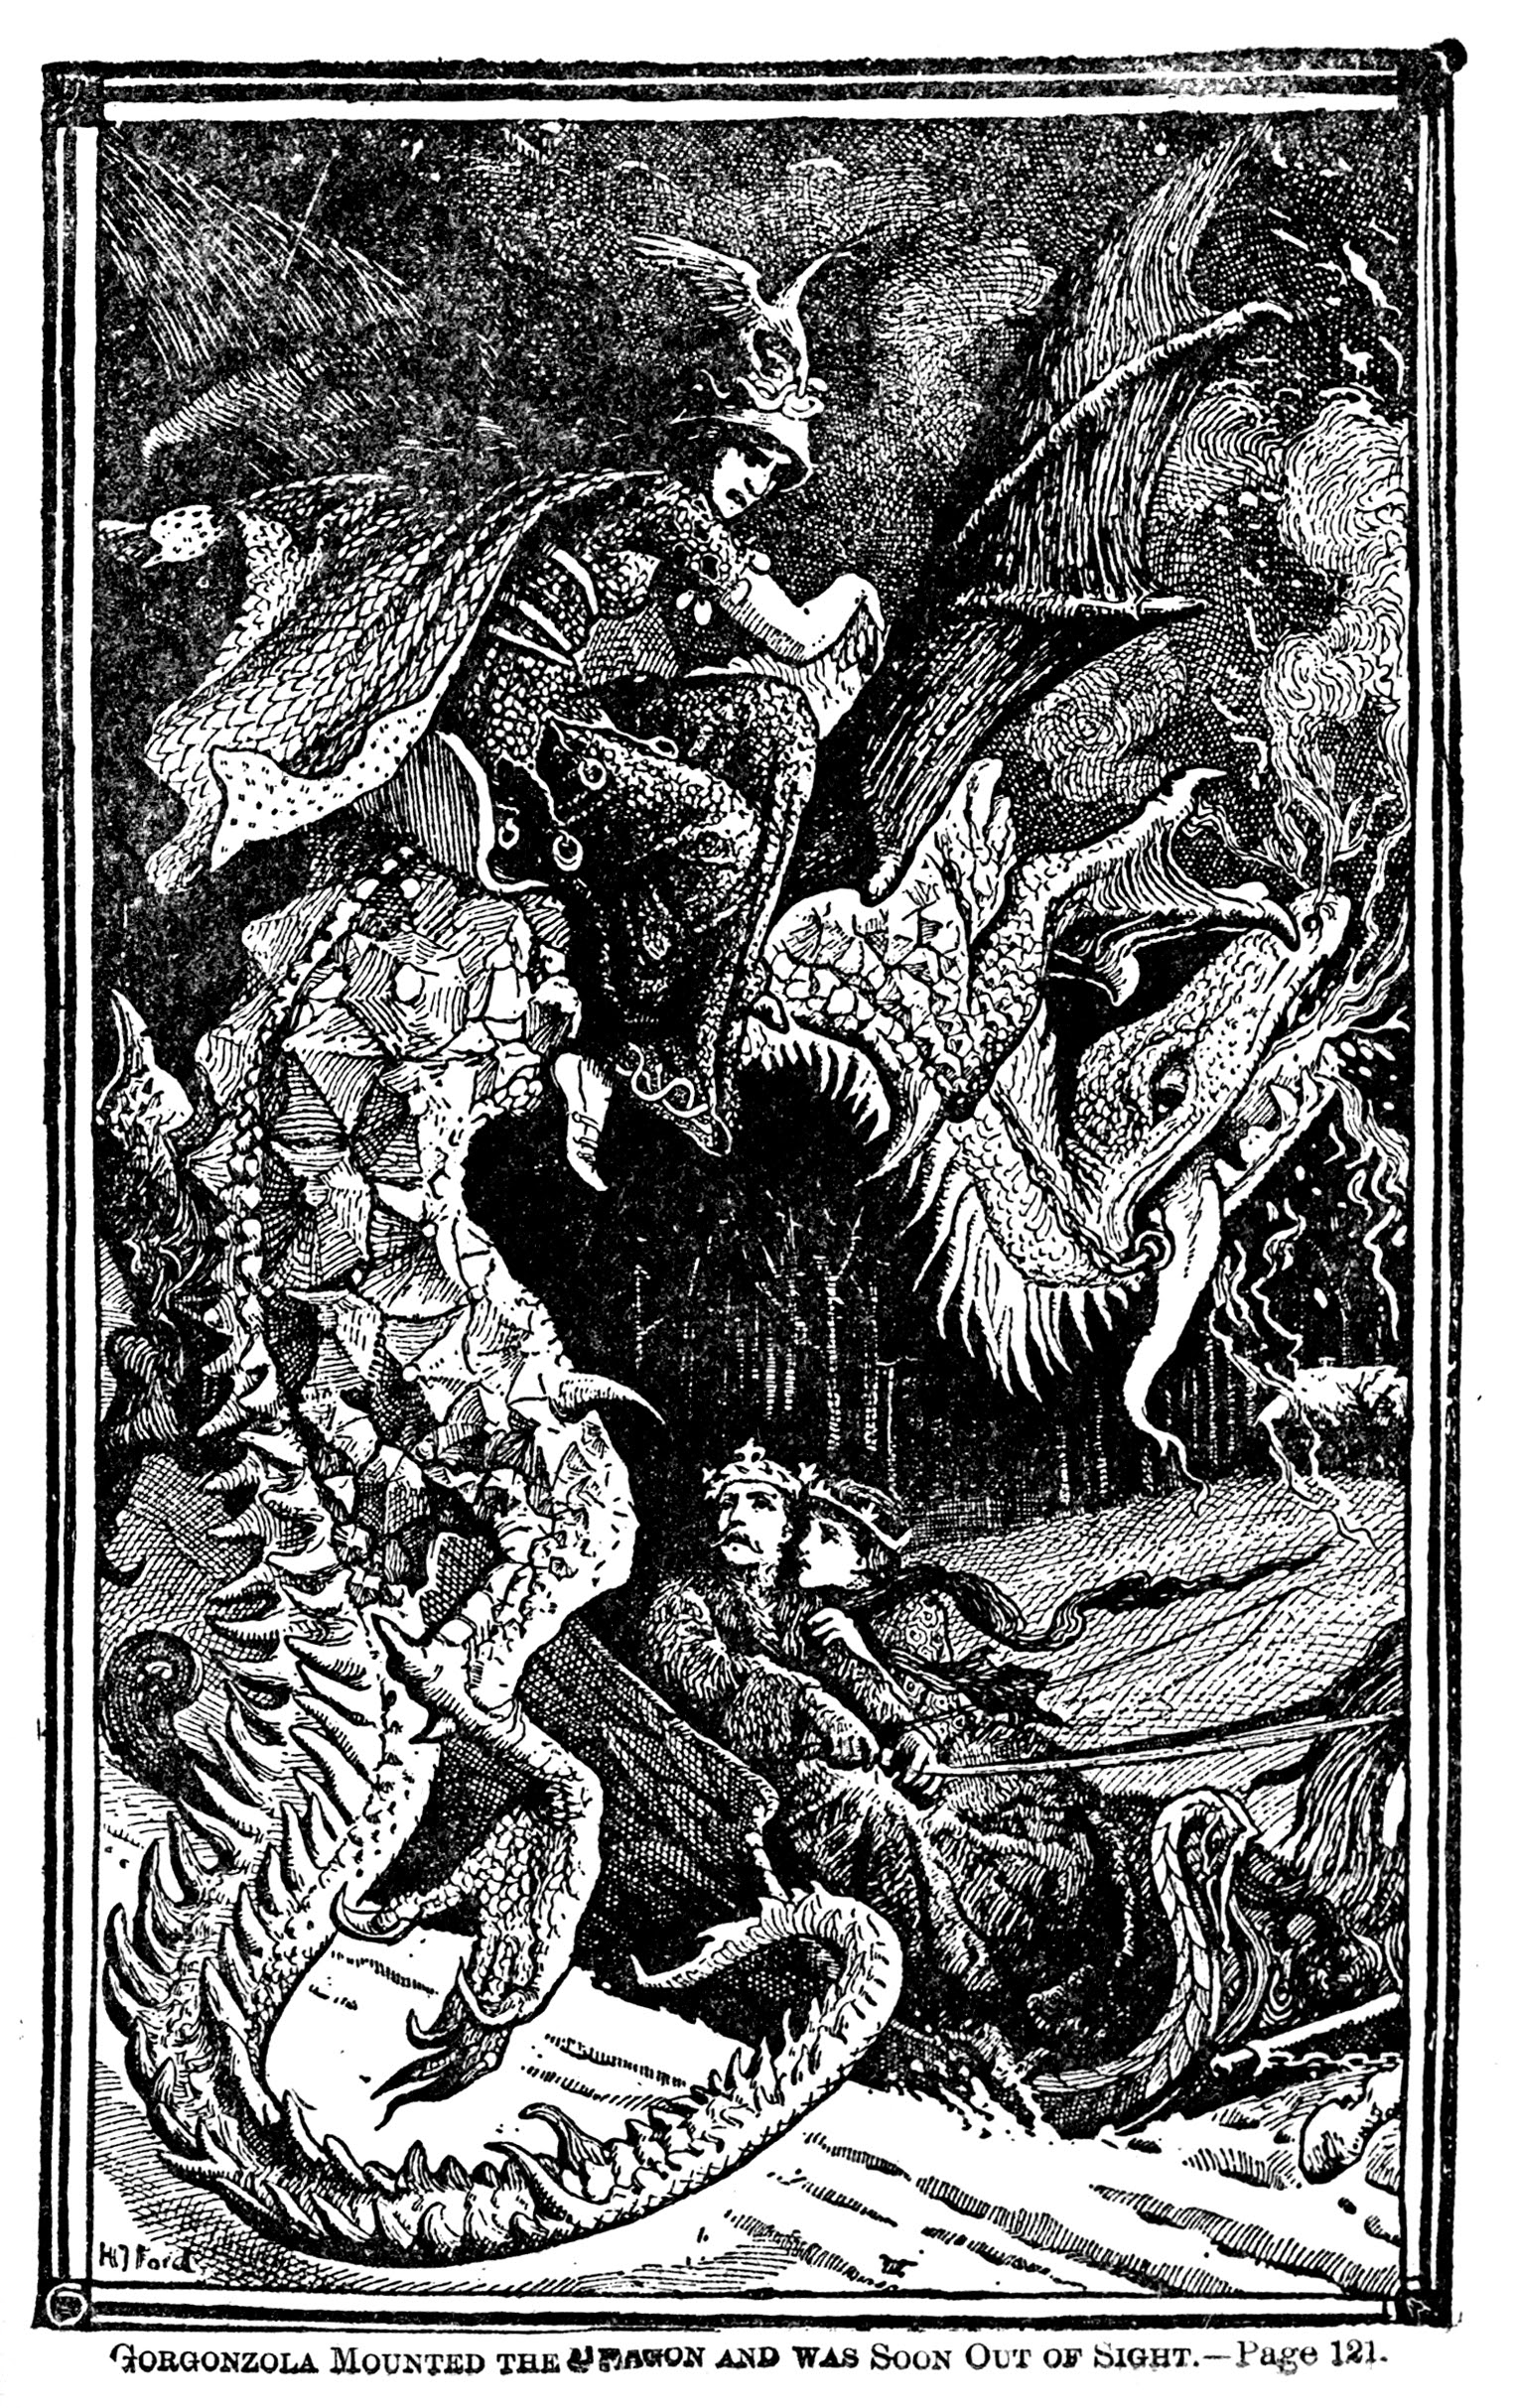 Henry Justice Ford - The green fairy book, edited by Andrew Lang, 1900 (illustration 3)